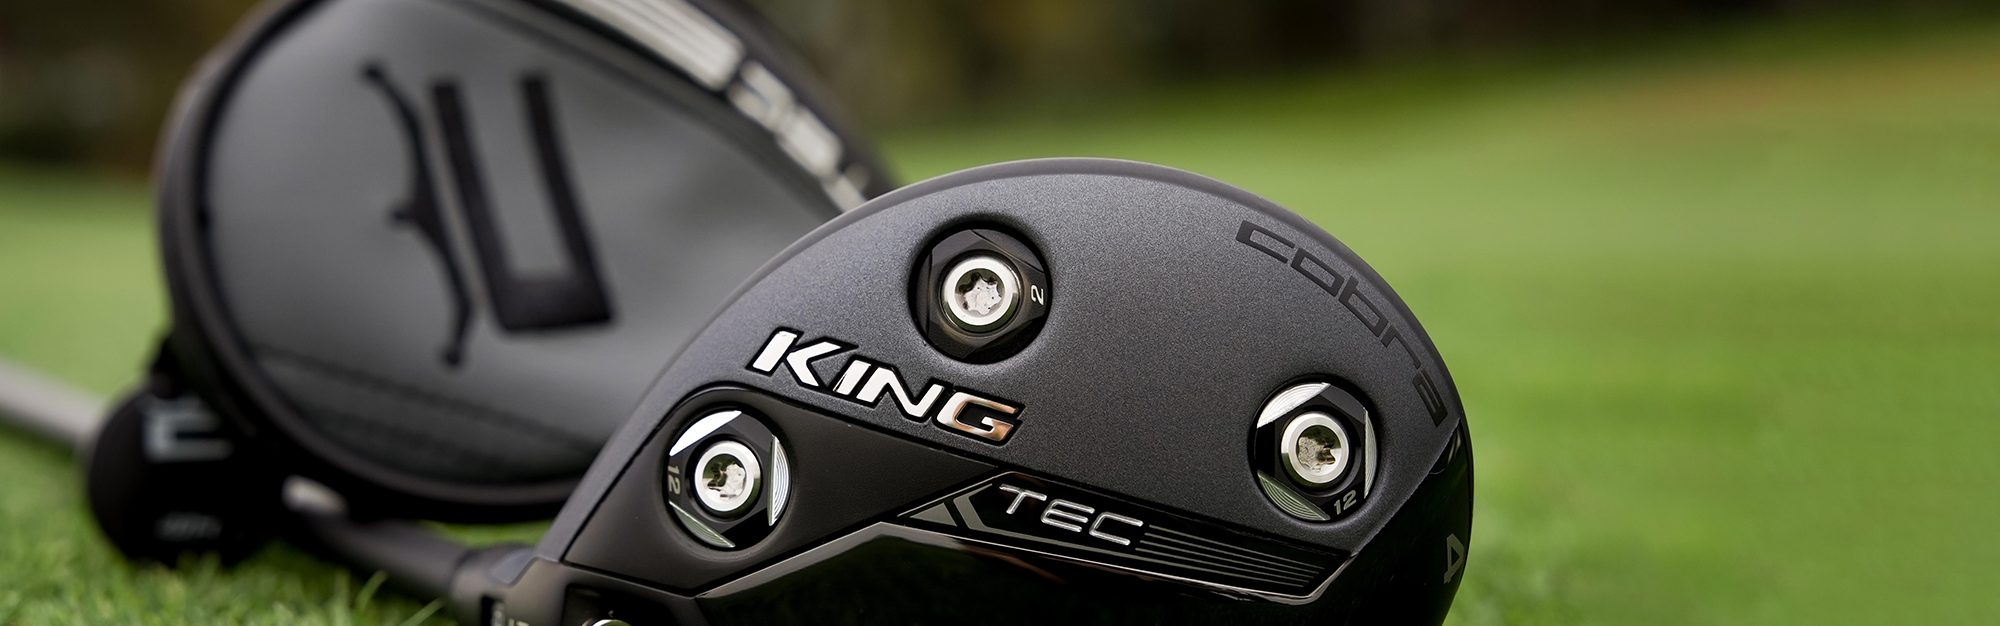 First look: Cobra King expand King hybrid family